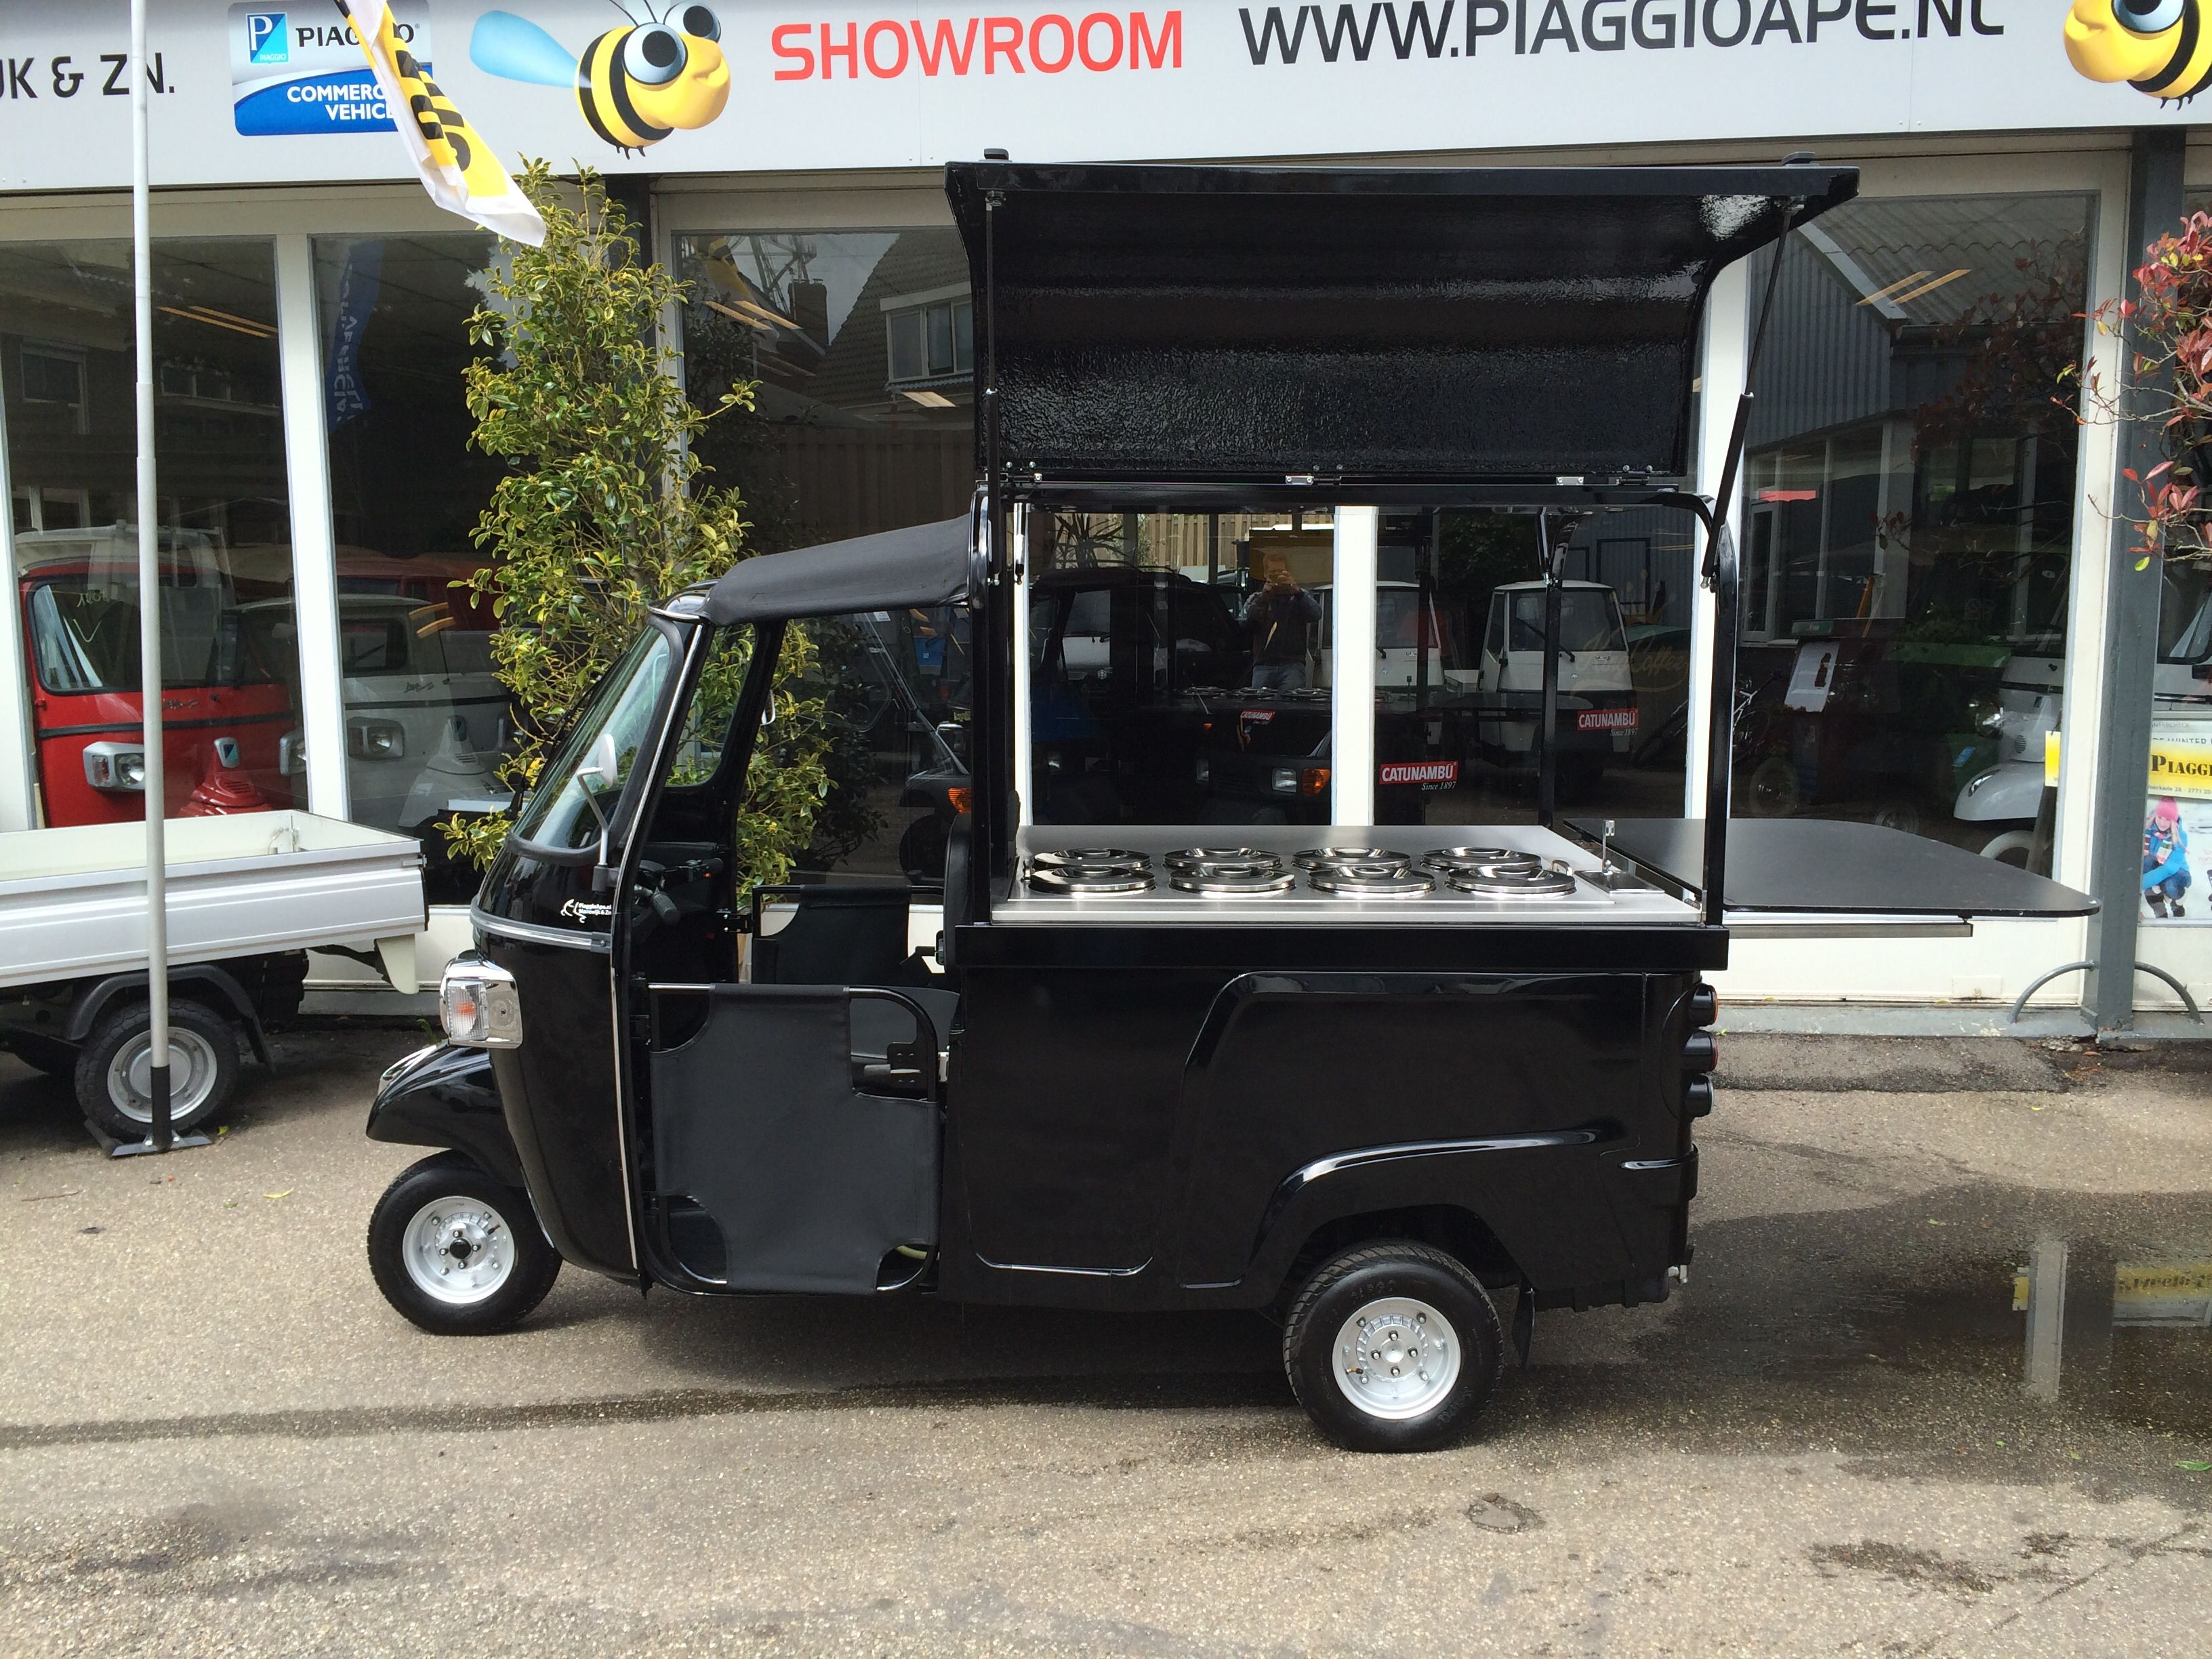 ape calessino 200 ijsco piaggio food vespa ape food. Black Bedroom Furniture Sets. Home Design Ideas